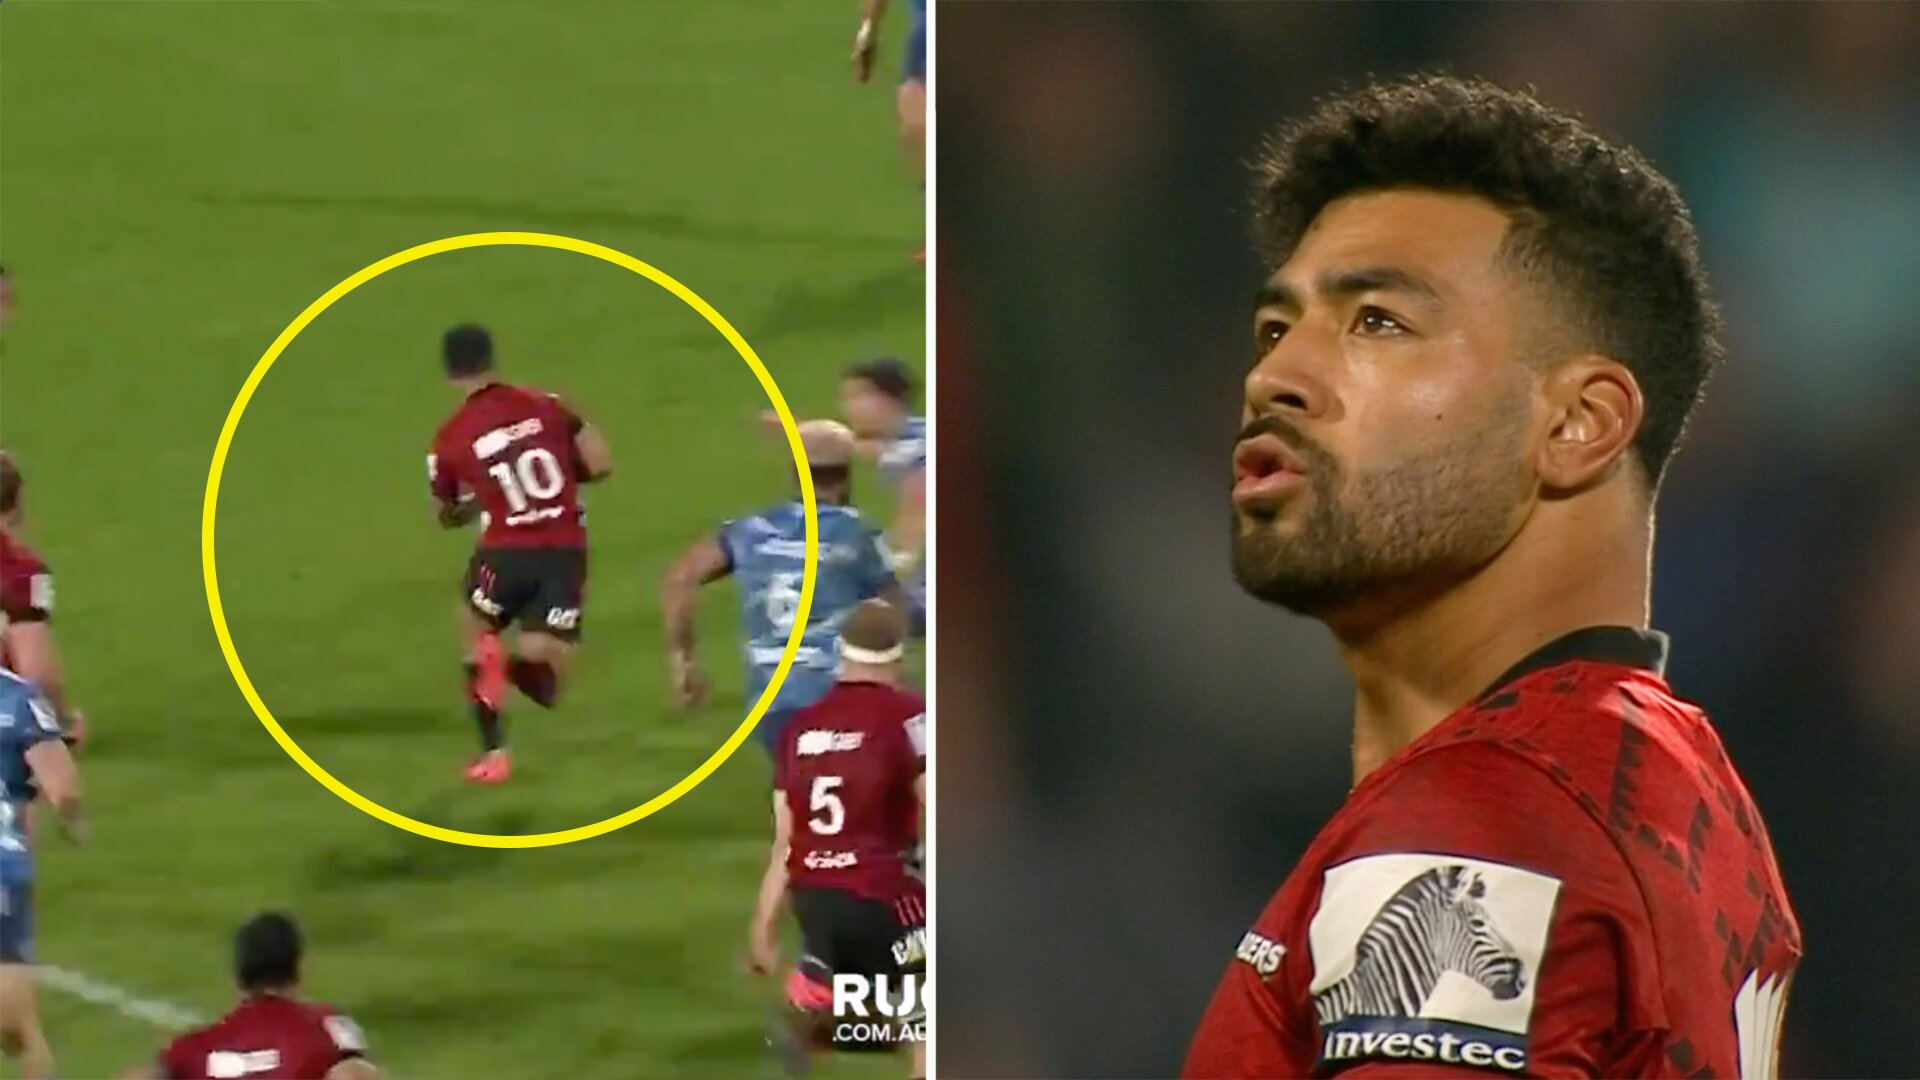 Richie Mo'unga single handedly took apart the Blues today in game changing performance for the Crusaders